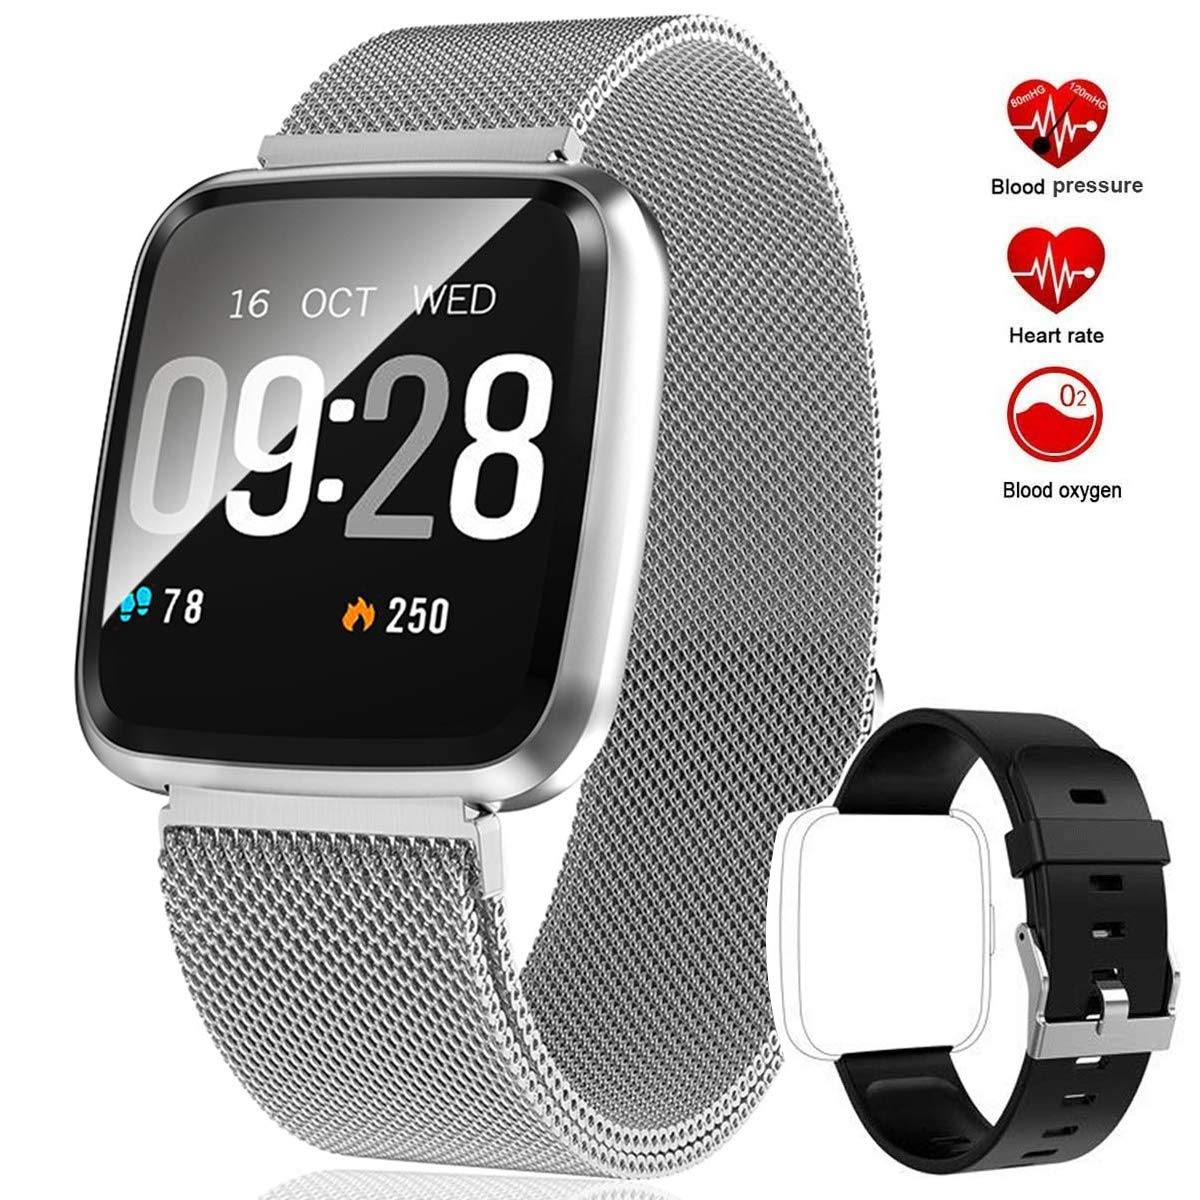 feifuns Smart Watch, Fitness Activity Tracker Watch with Heart Rate Monitor, IP67 Waterproof Fit Watch with Calorie Counter, Smart Fitness Band with Sleep Monitor, Pedometer Watch